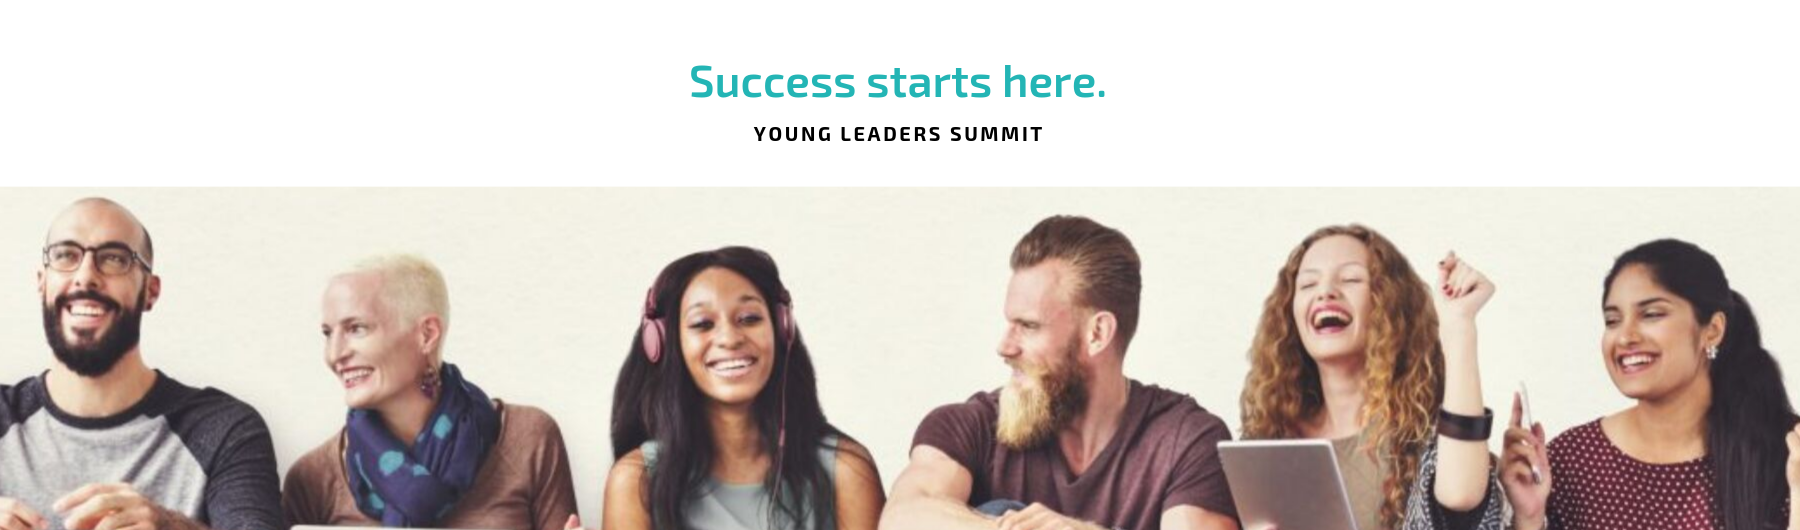 Young Leaders Summit